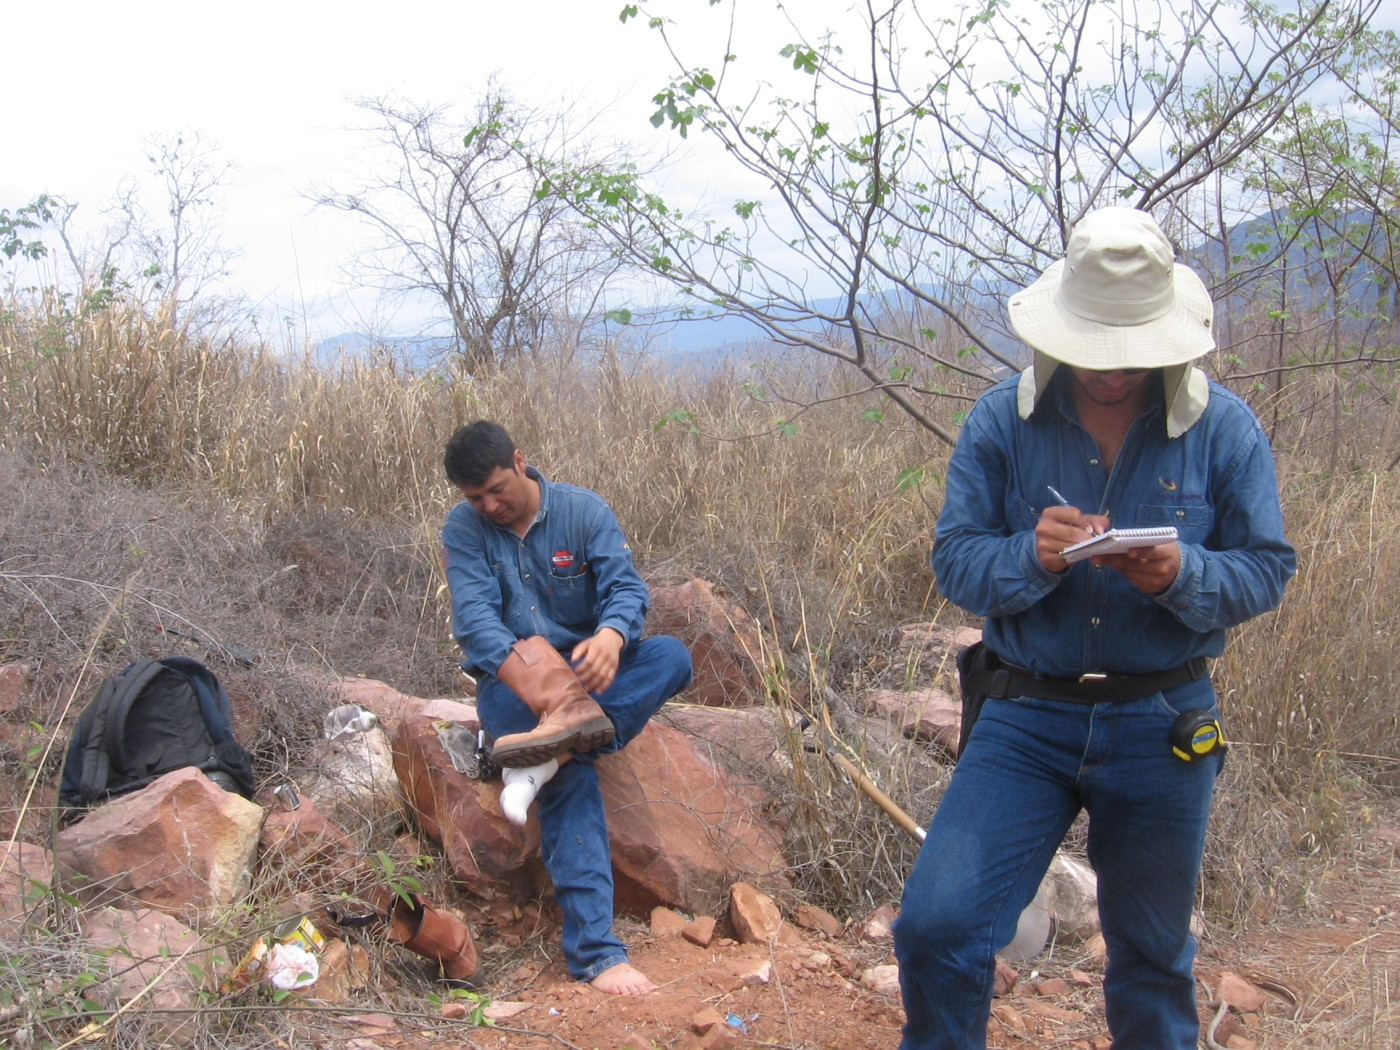 Surveyors in Bolivia